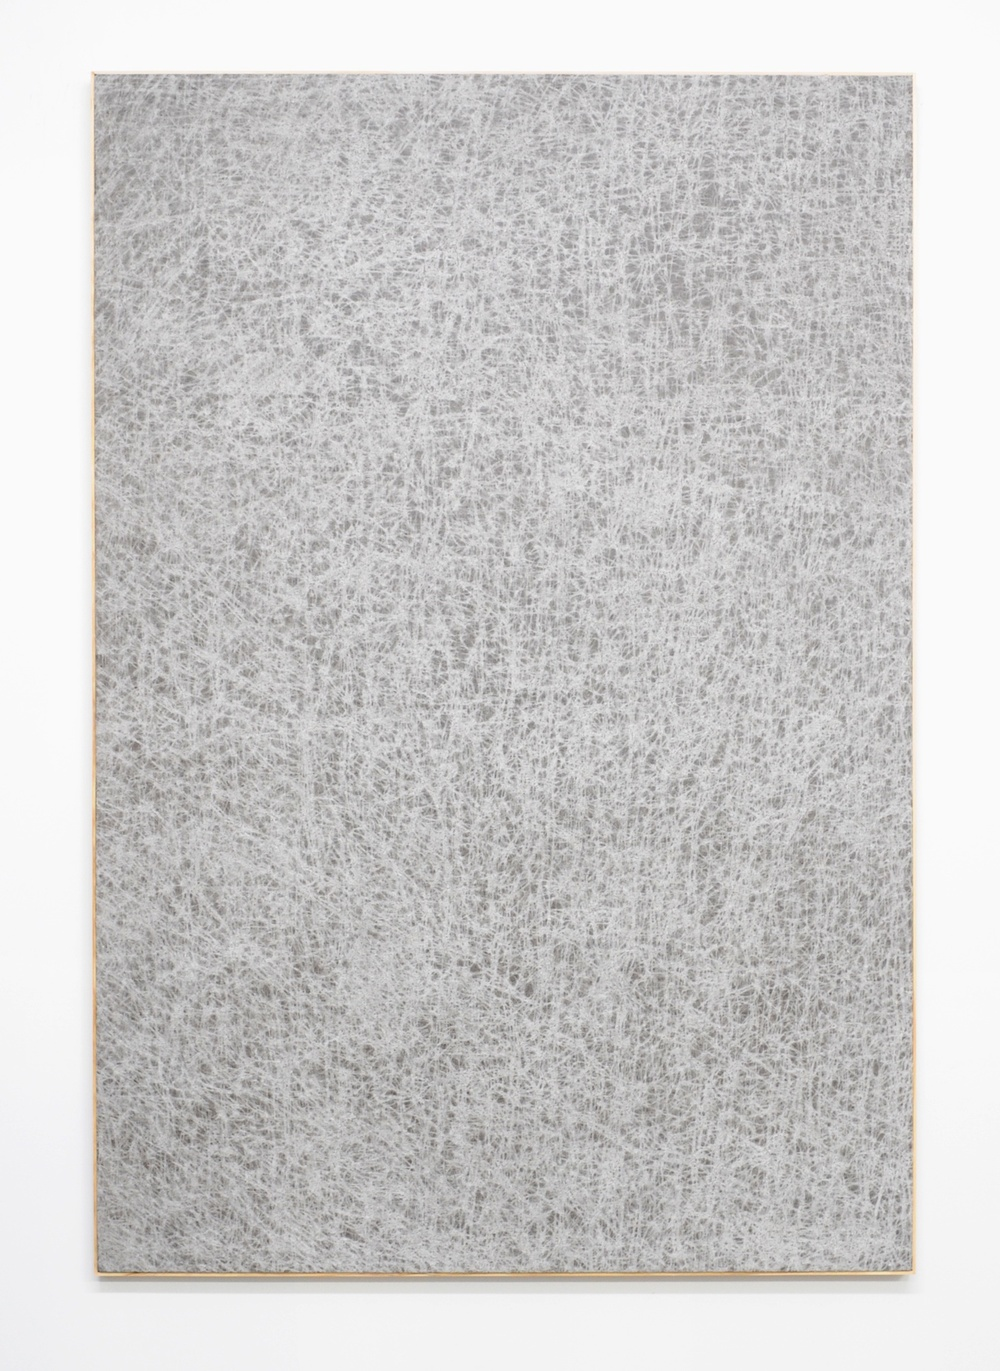 Jessica Sanders  Crumple A36 , 2014 Beeswax on stretched linen with artist frame 72 ½ x 49 ½ in/ 184.2 x 125.7 cm